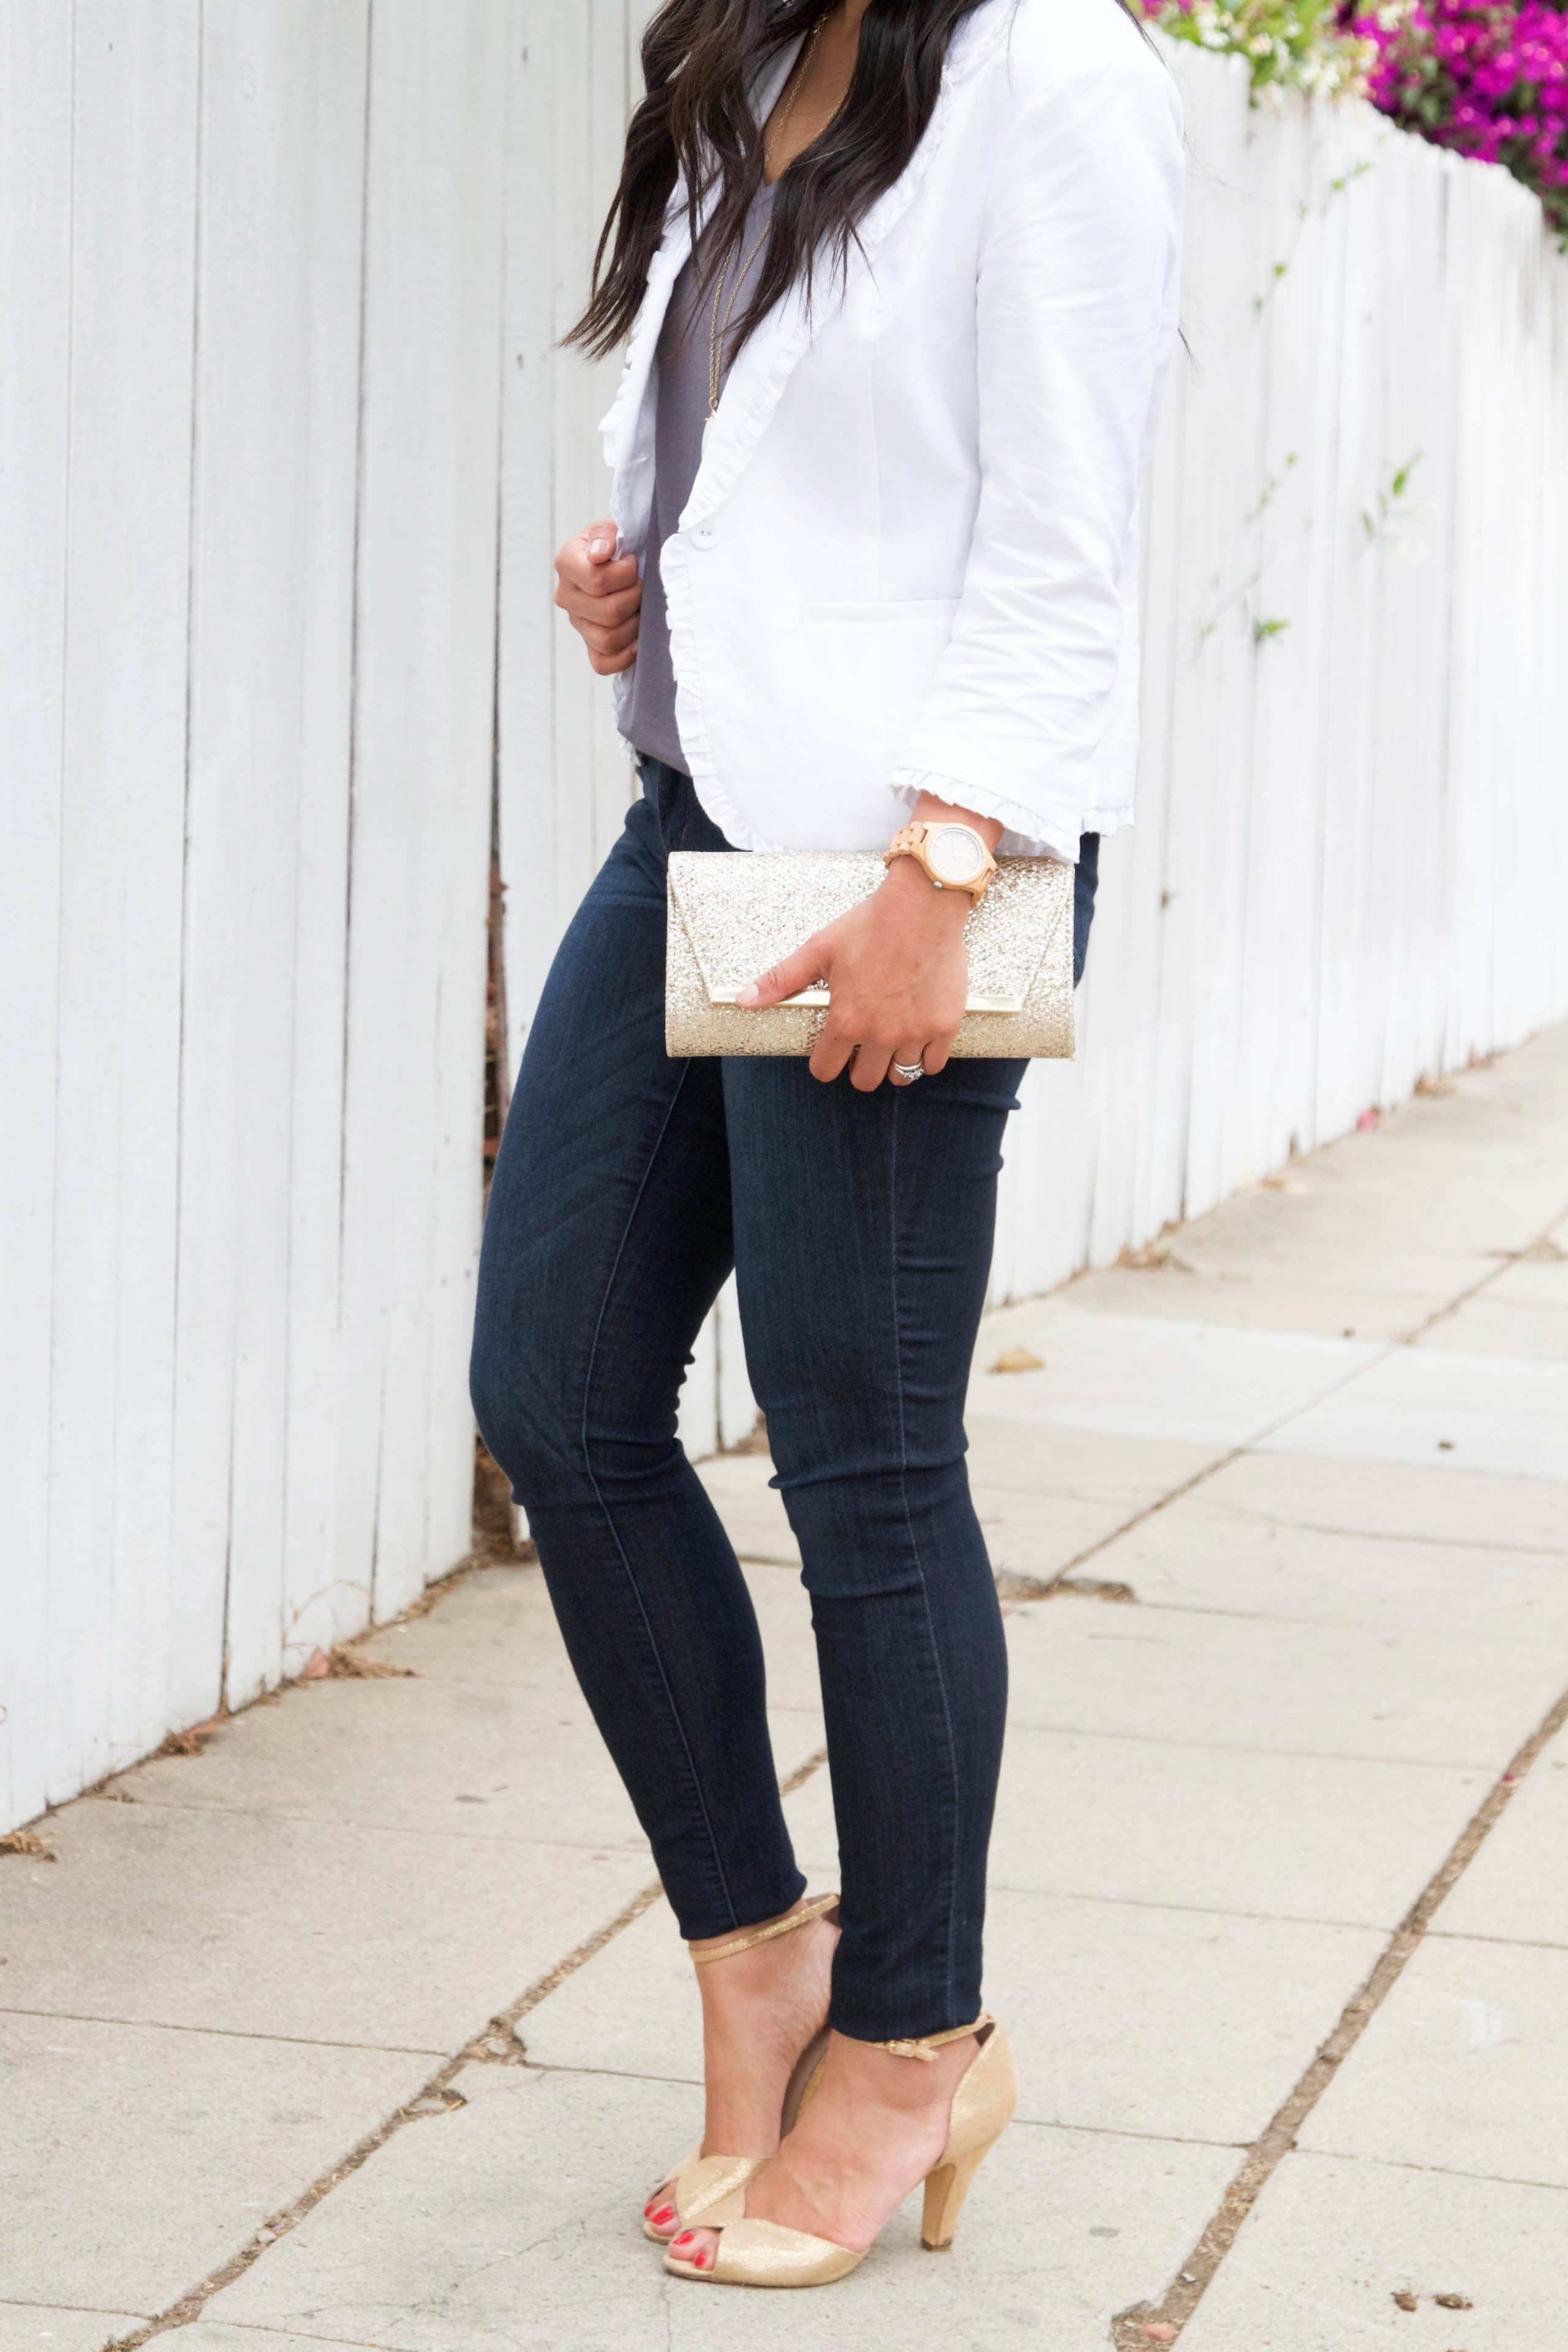 White Blazer + Gold Clutch + Jord Watch + Gold Heels + Skinnies